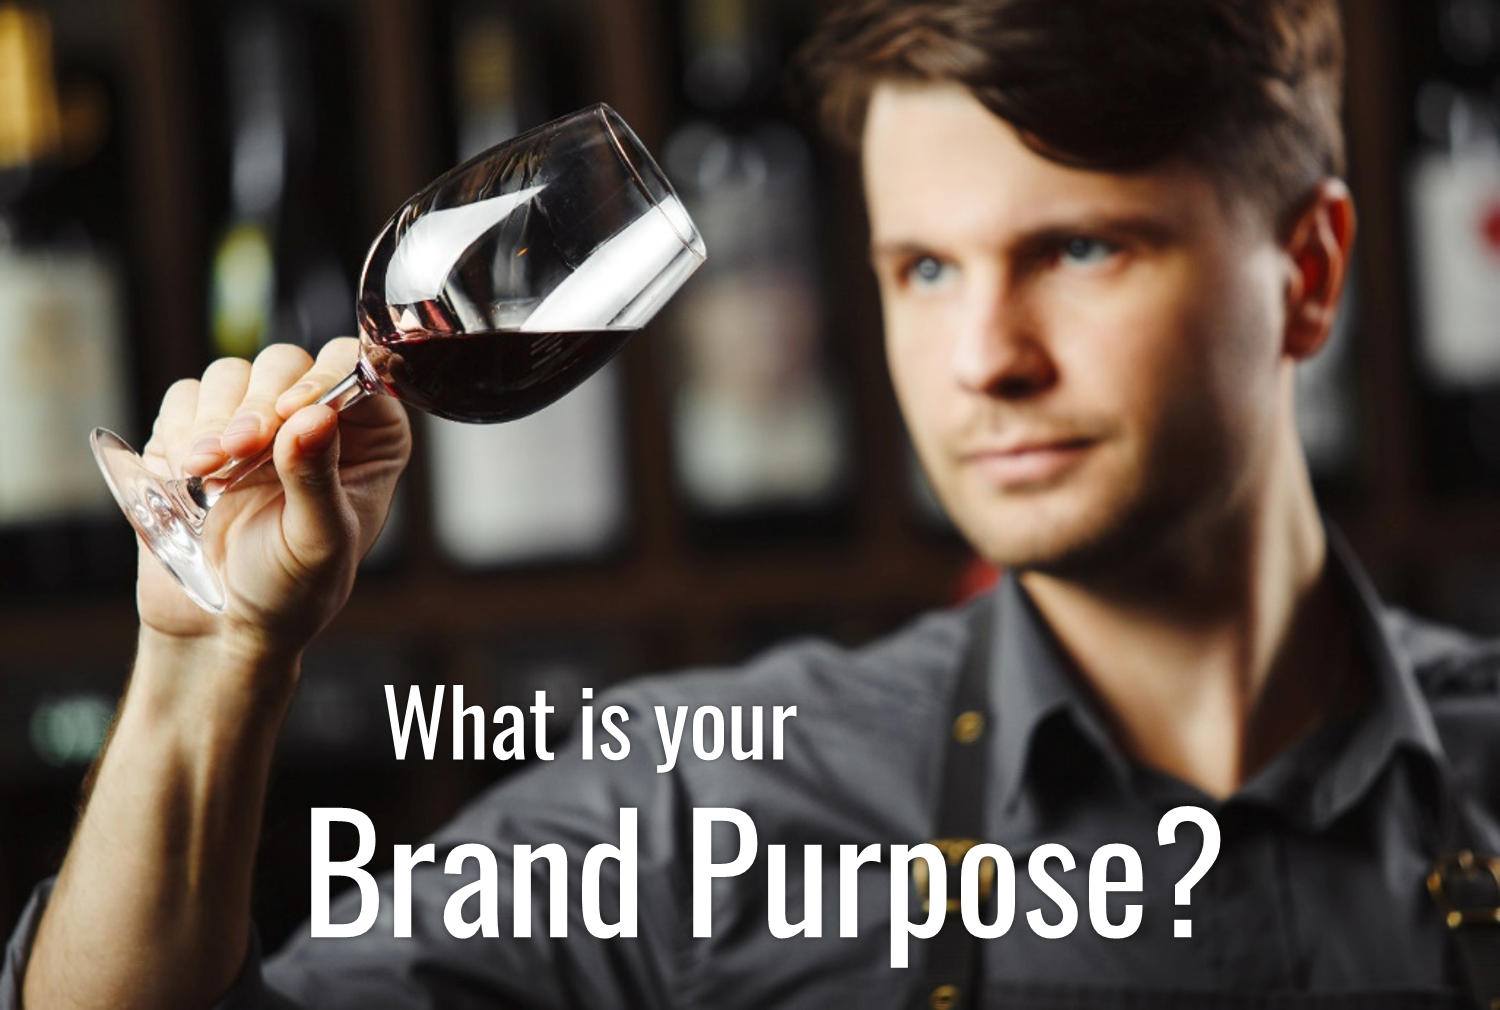 Workshop: How to develop a Brand Purpose? - Image source: Il21/Shutterstock.